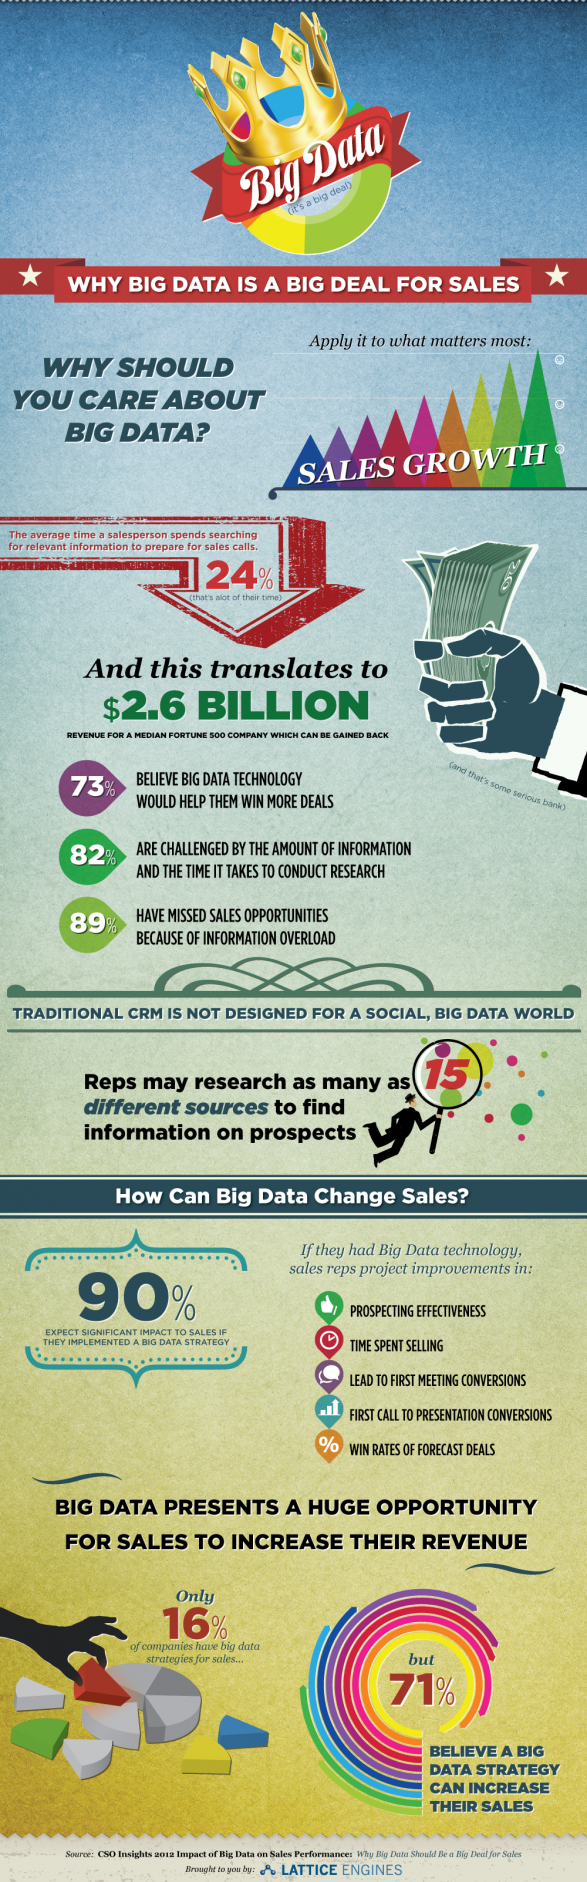 Why Big Data is a Big Deal for Sales